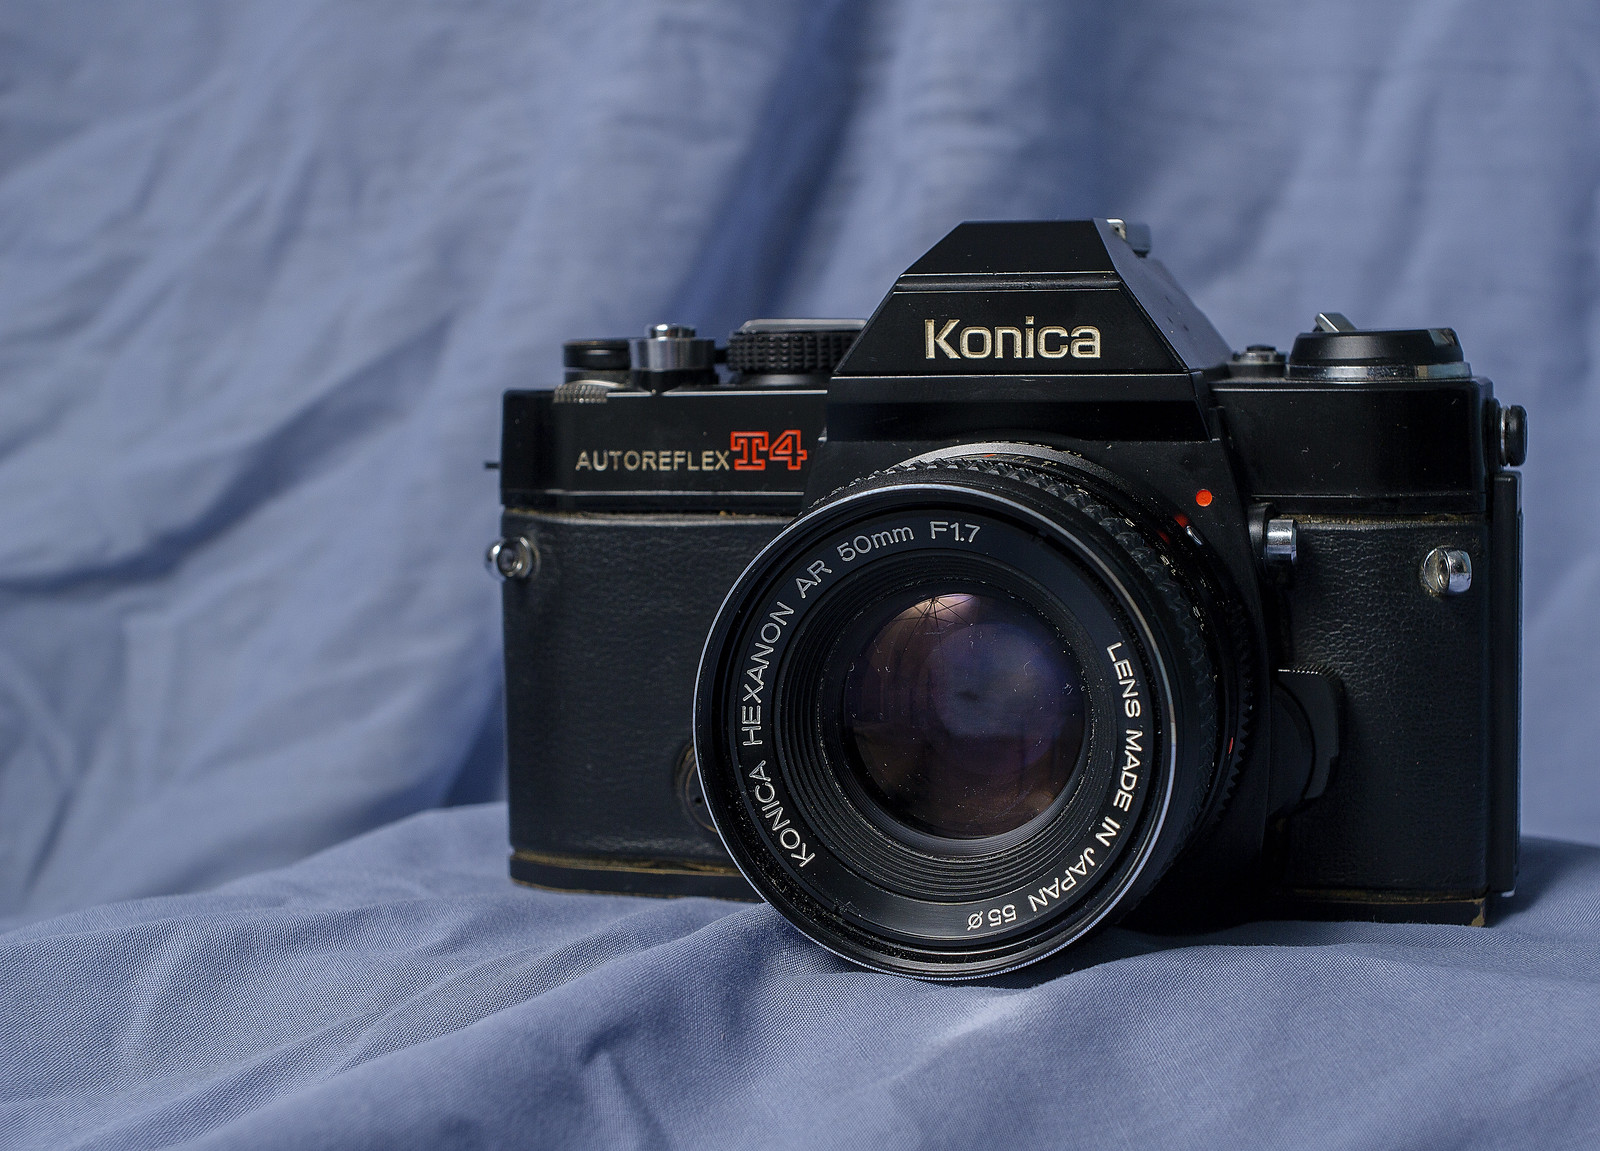 Camera Review Blog No. 17 - Konica Autoreflex T4